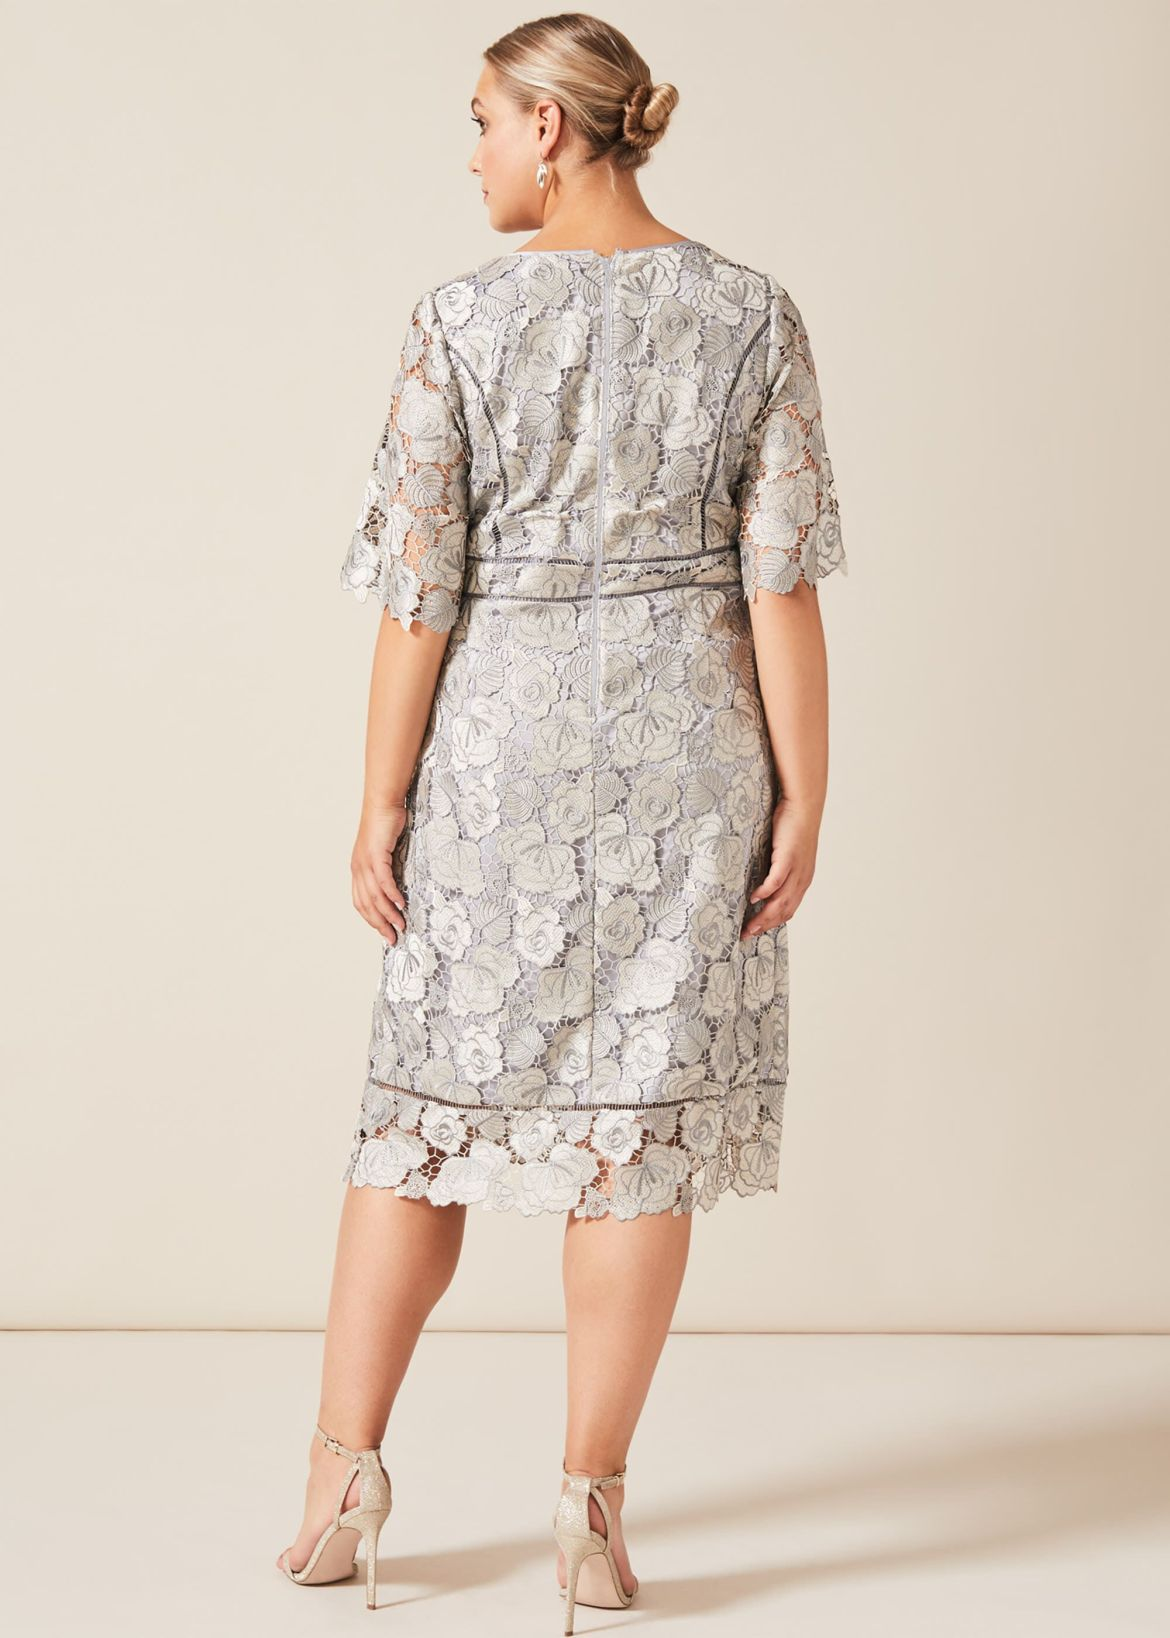 Ellis Lace Dress